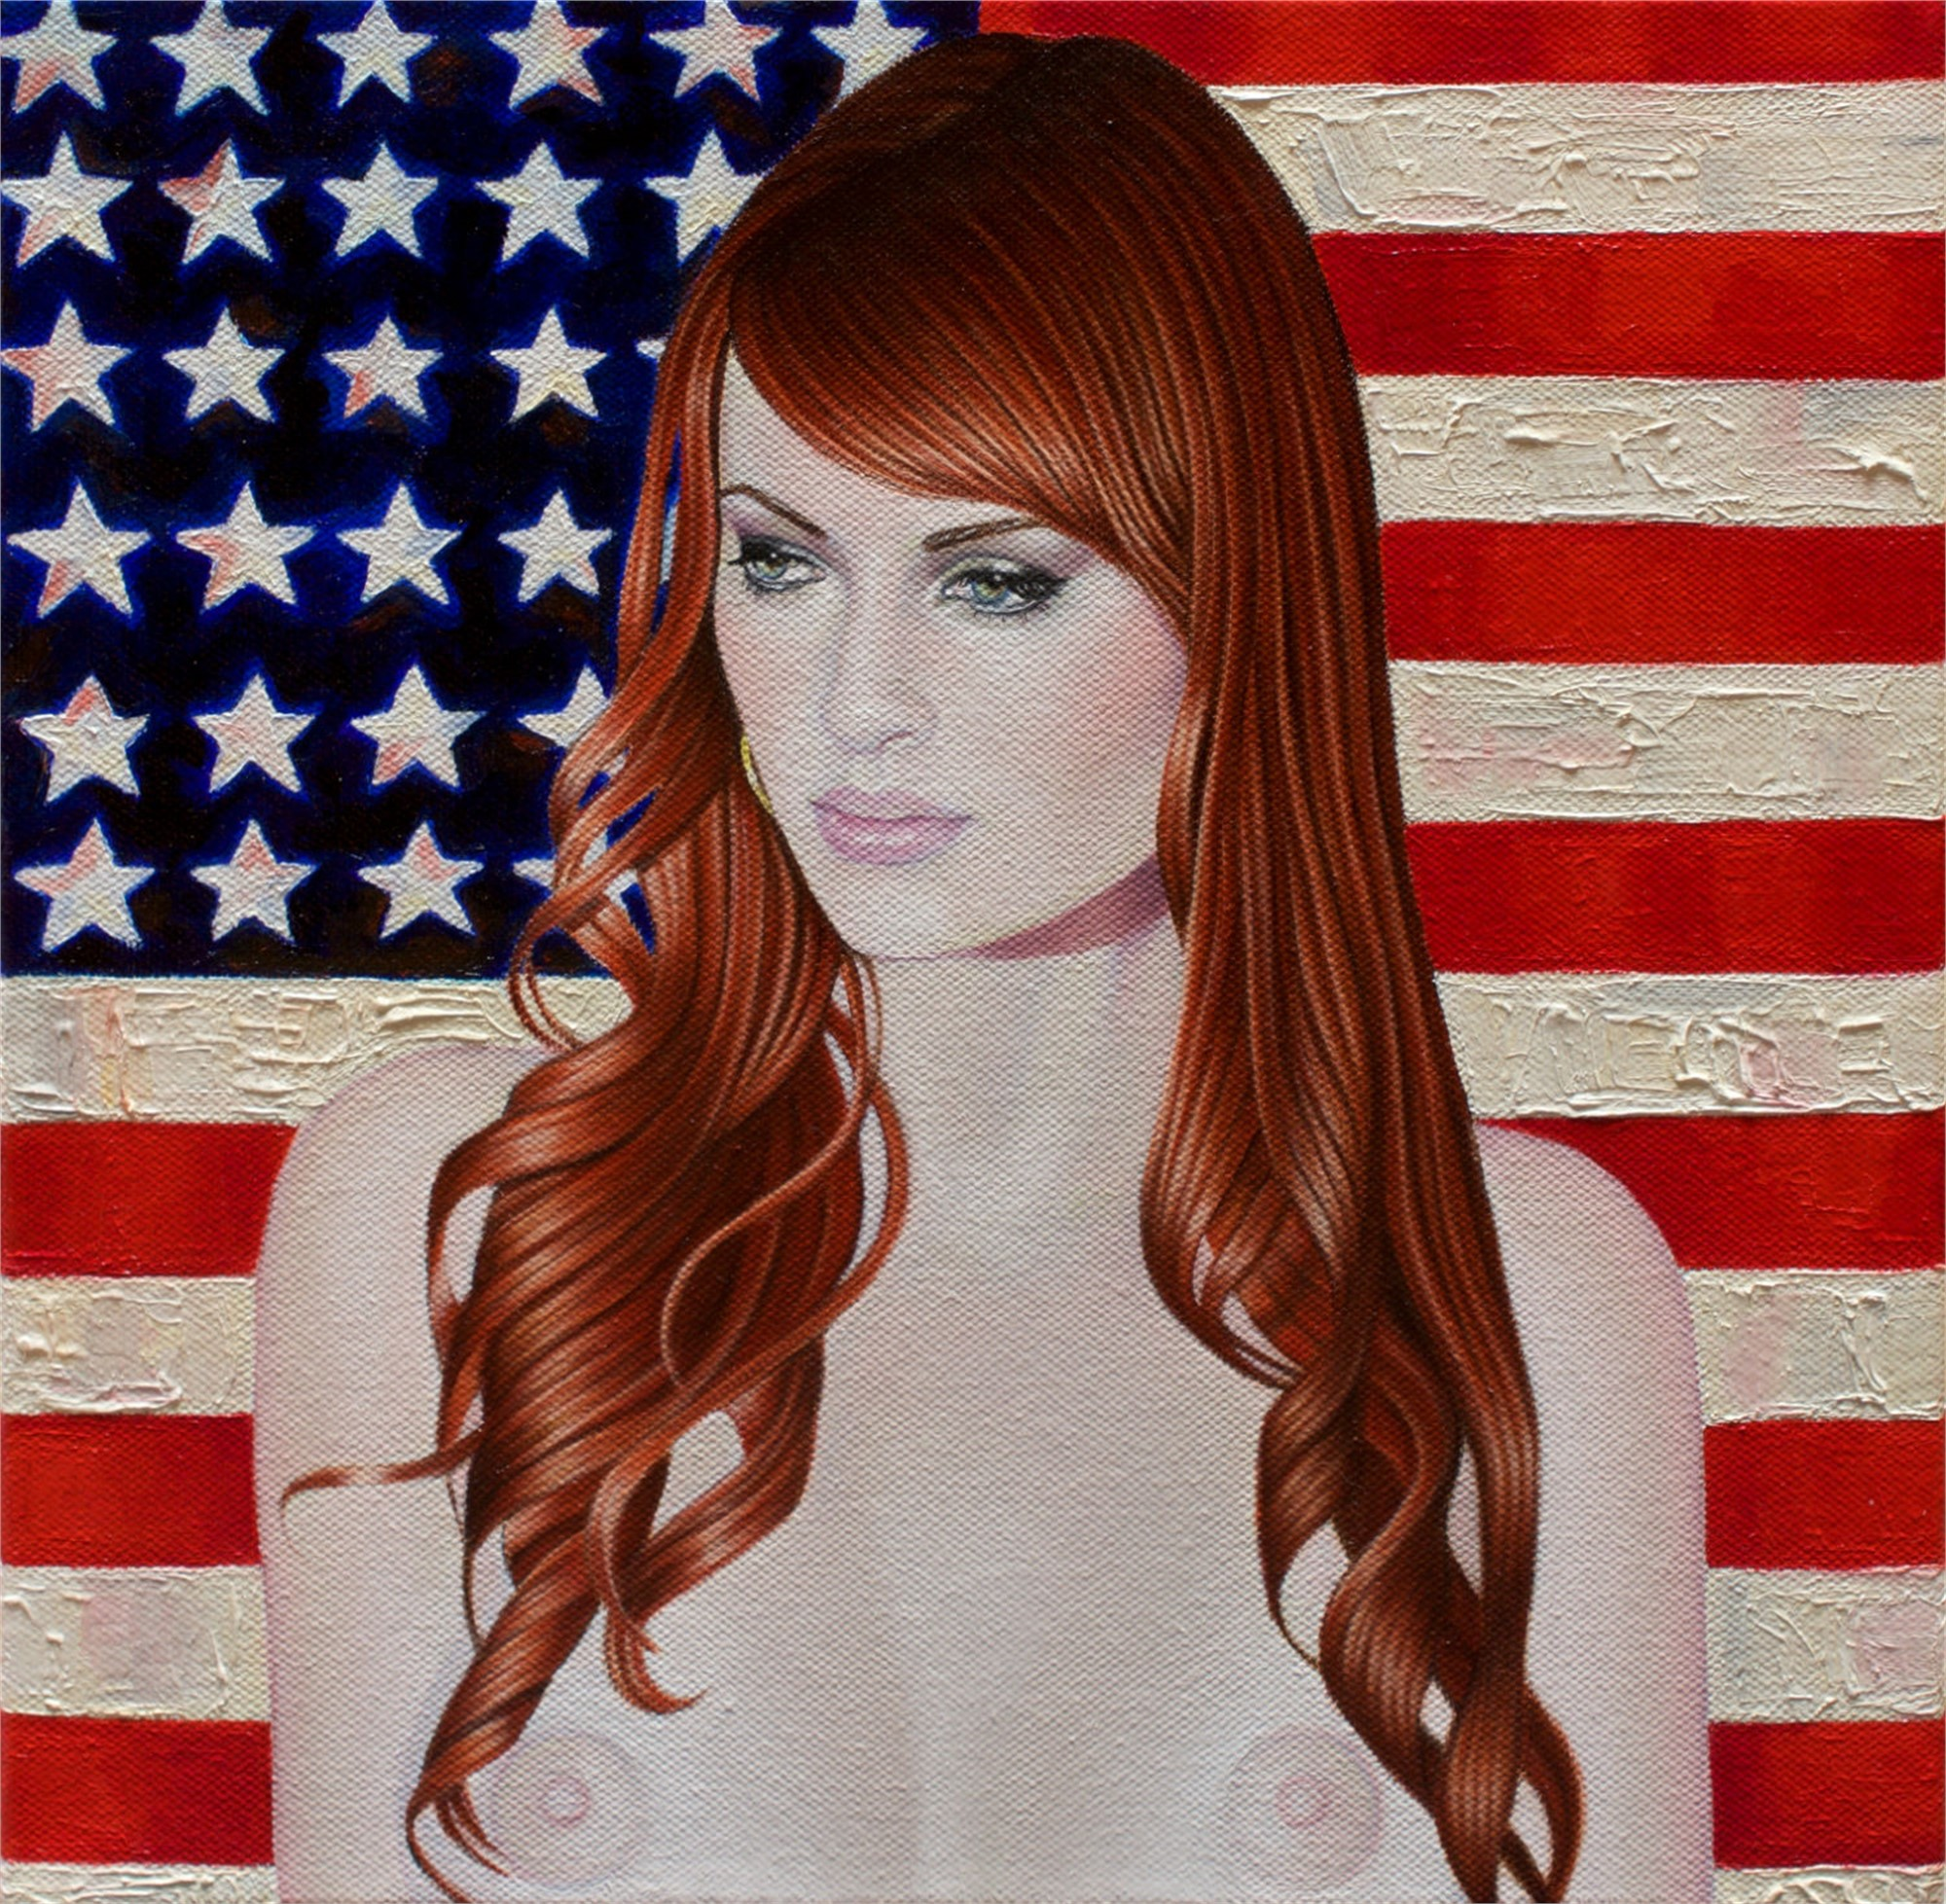 American Woman by Suzy Smith